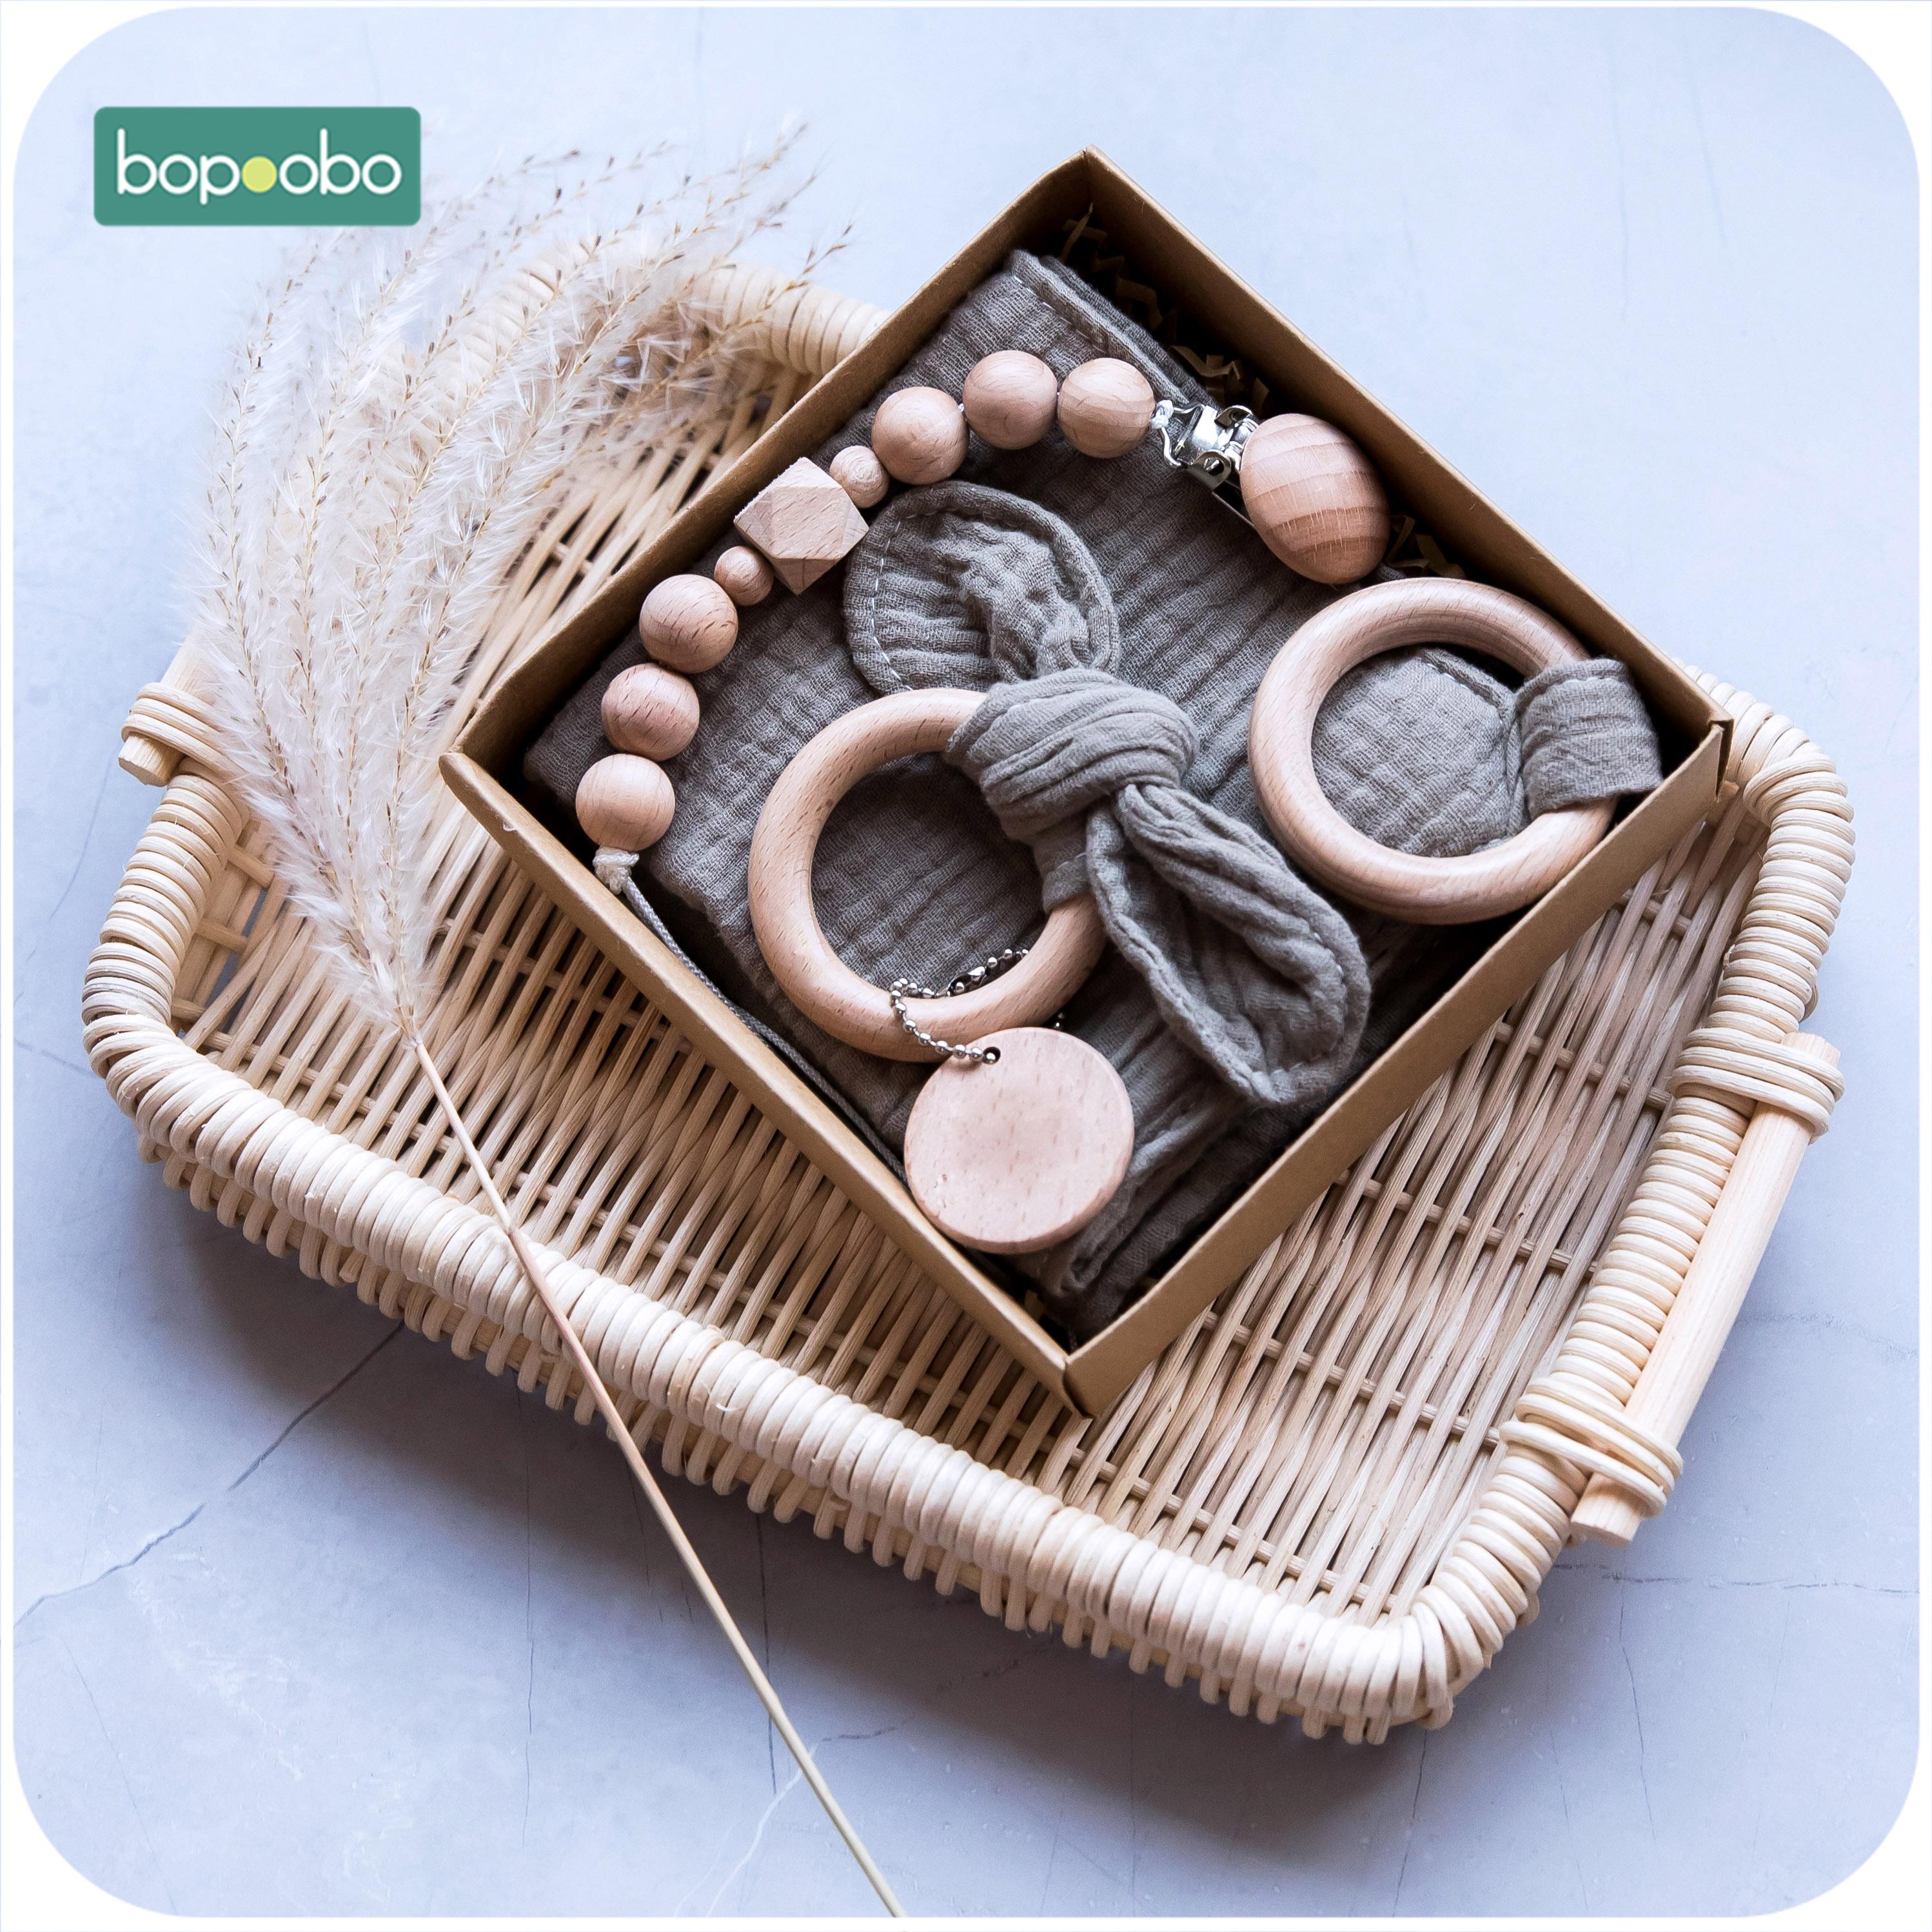 Bopoobo 3pcs/Set Wooden Teether Bunny Ear Wooden Rings Baby Bib Cotton Towel DIY Wood Pacifier Chain  For Nursing Baby Products